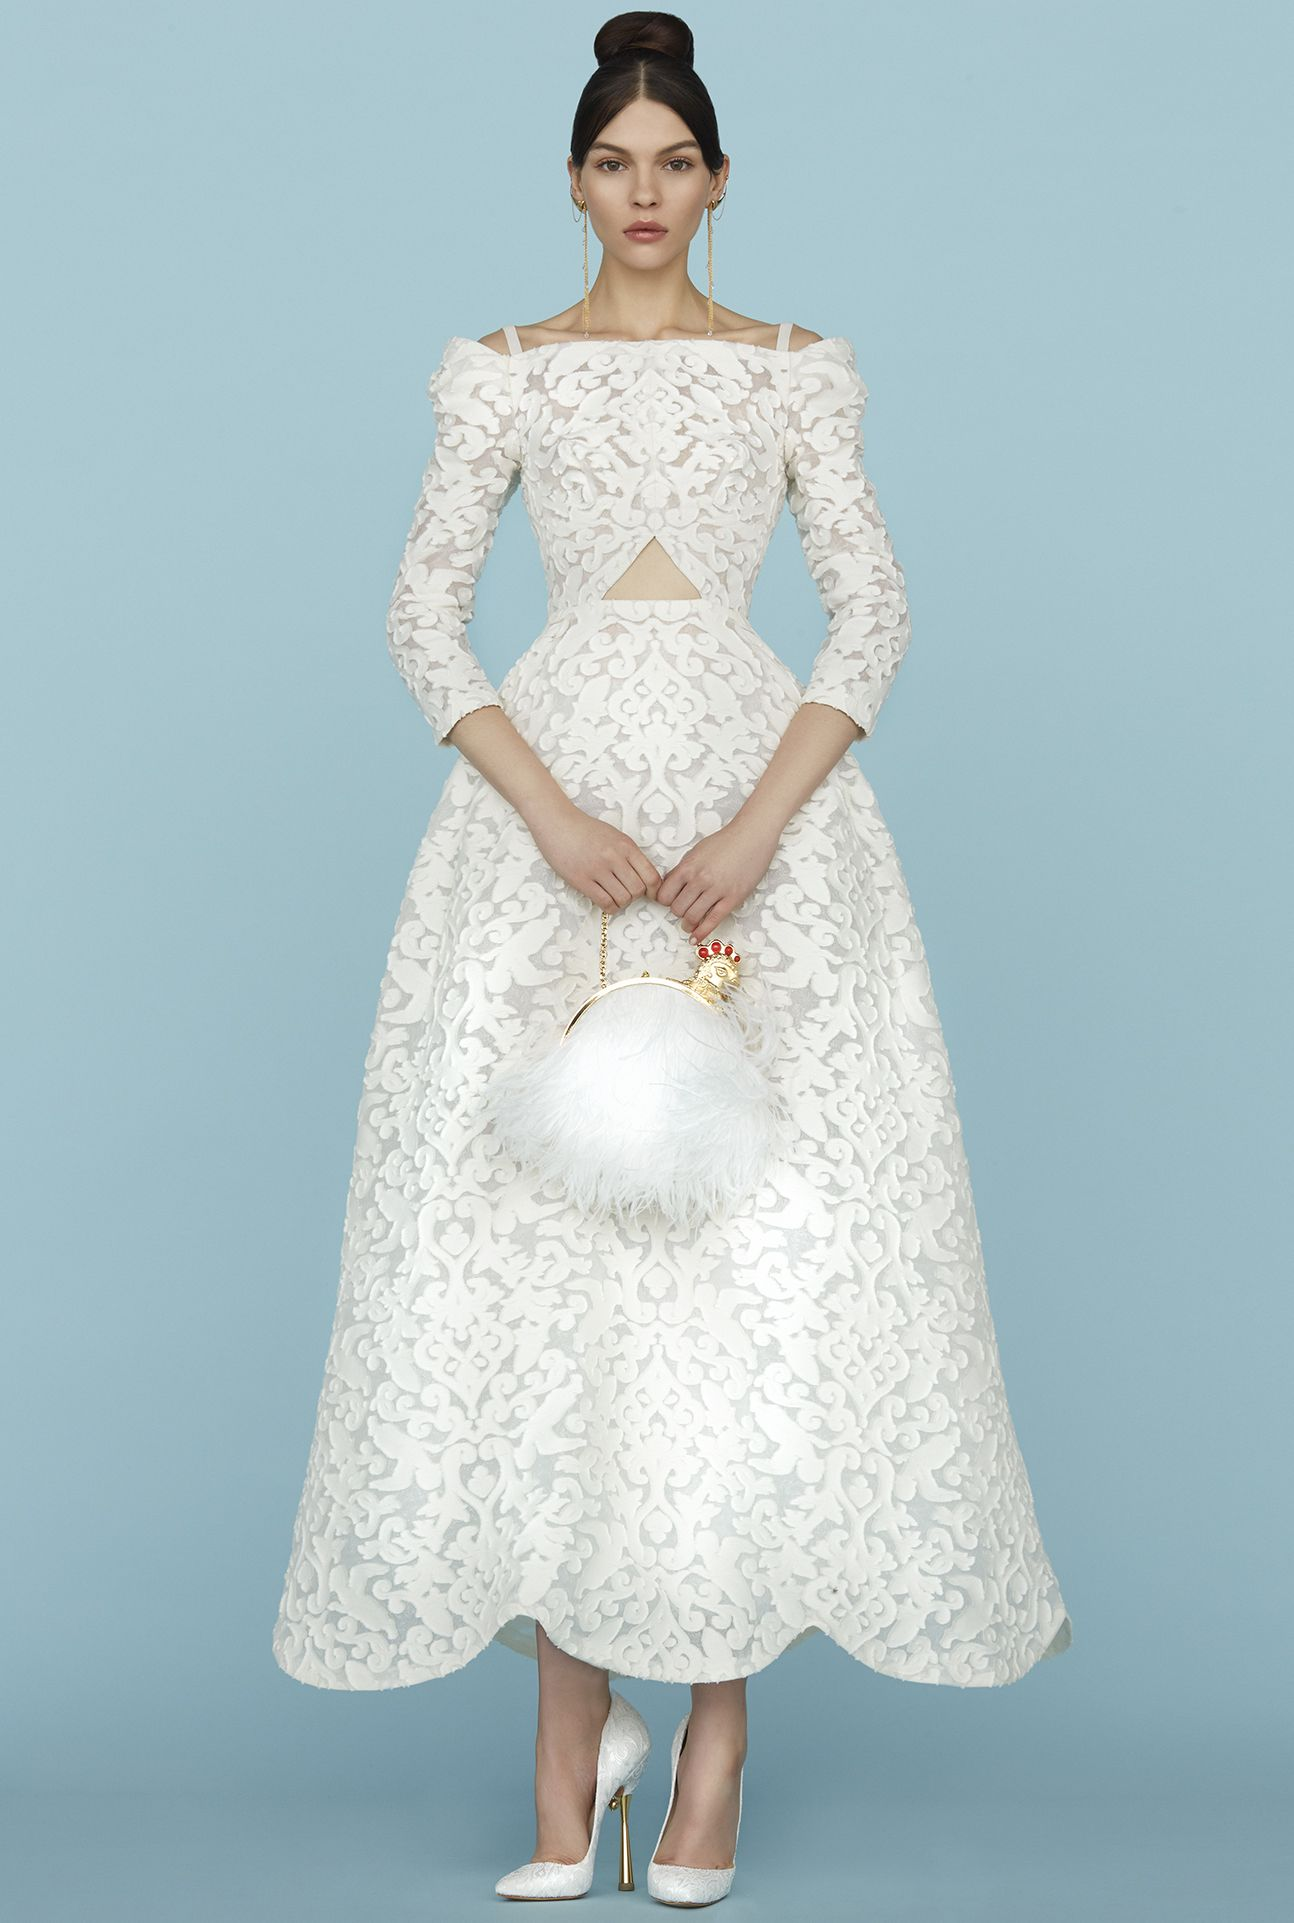 Ulyana Sergeenko | Ball Gowns | Pinterest | La mode, Couture and ...